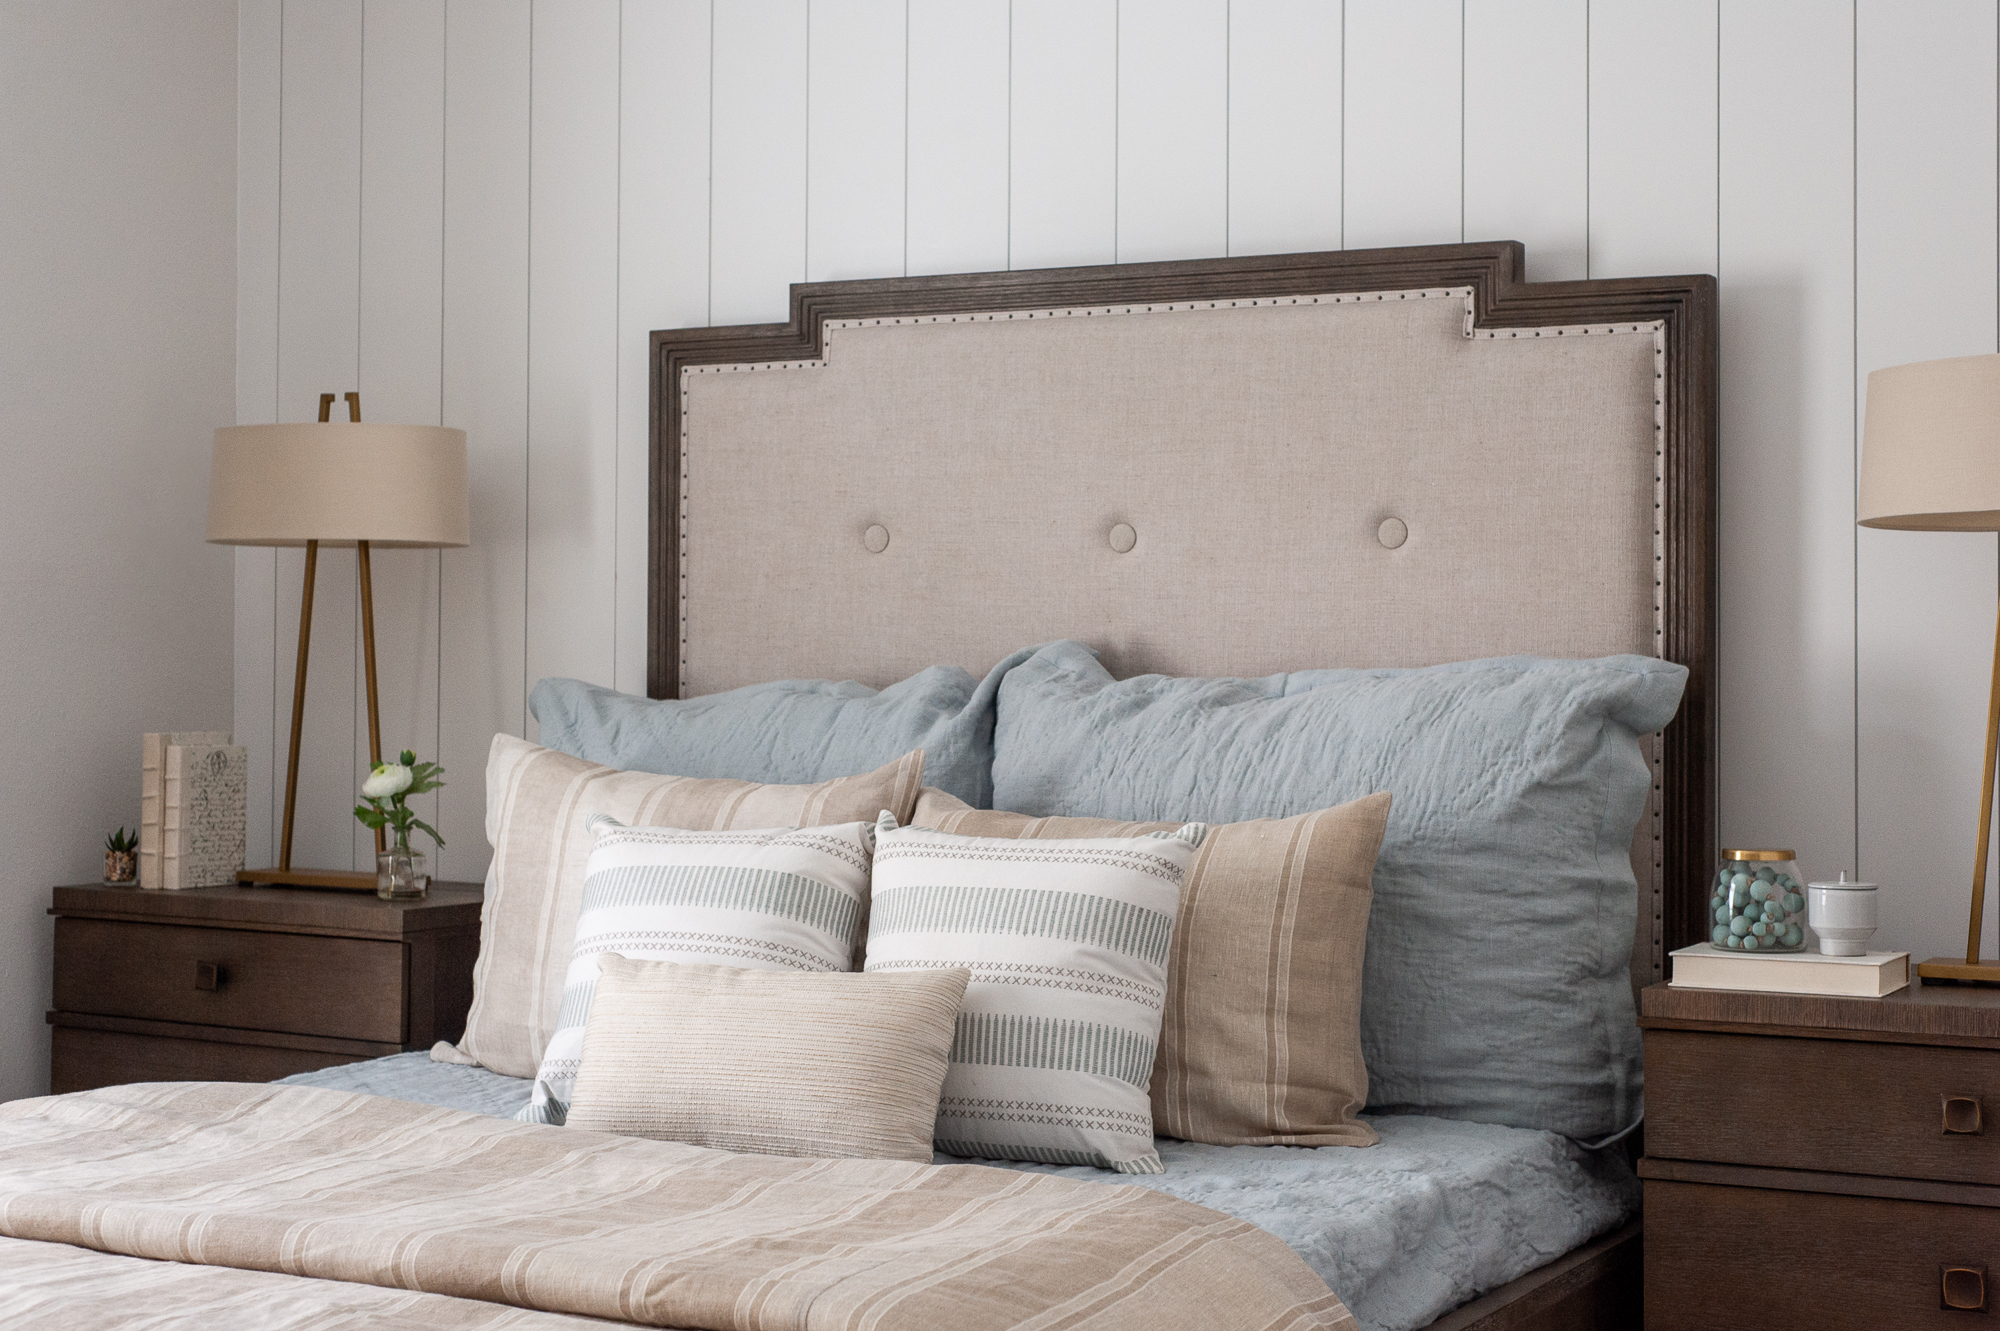 Micamy Design Studio_Model Home_Interior Design_Orchard Cove_Modern Coastal_Universal_Uttermost_Vertical Shiplap_Amity Home_Dutch Euros_Wendover_Loloi_Guest Suite.jpg